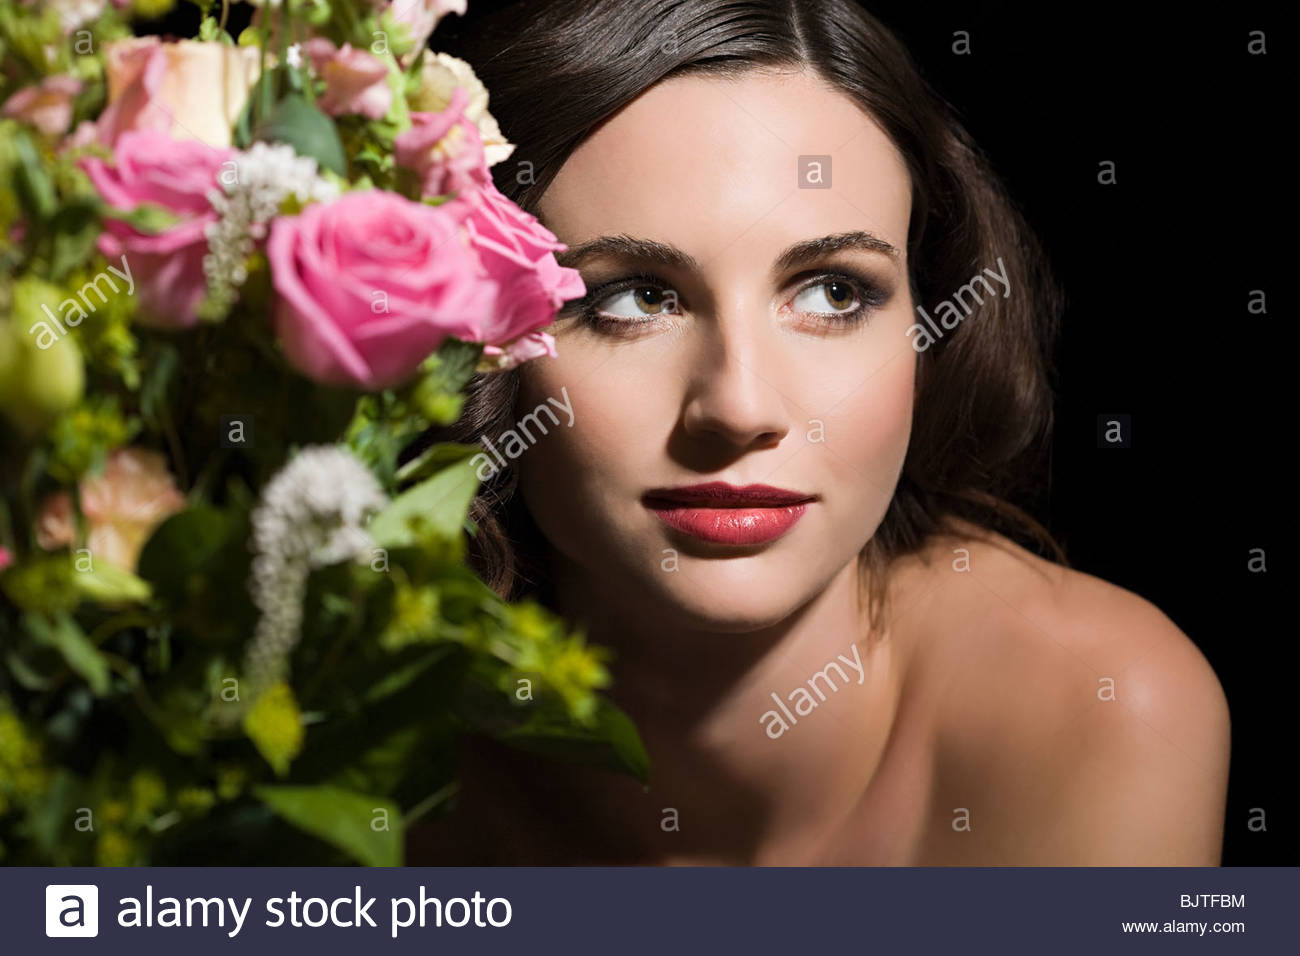 Woman behind a bunch of flowers - Stock Image